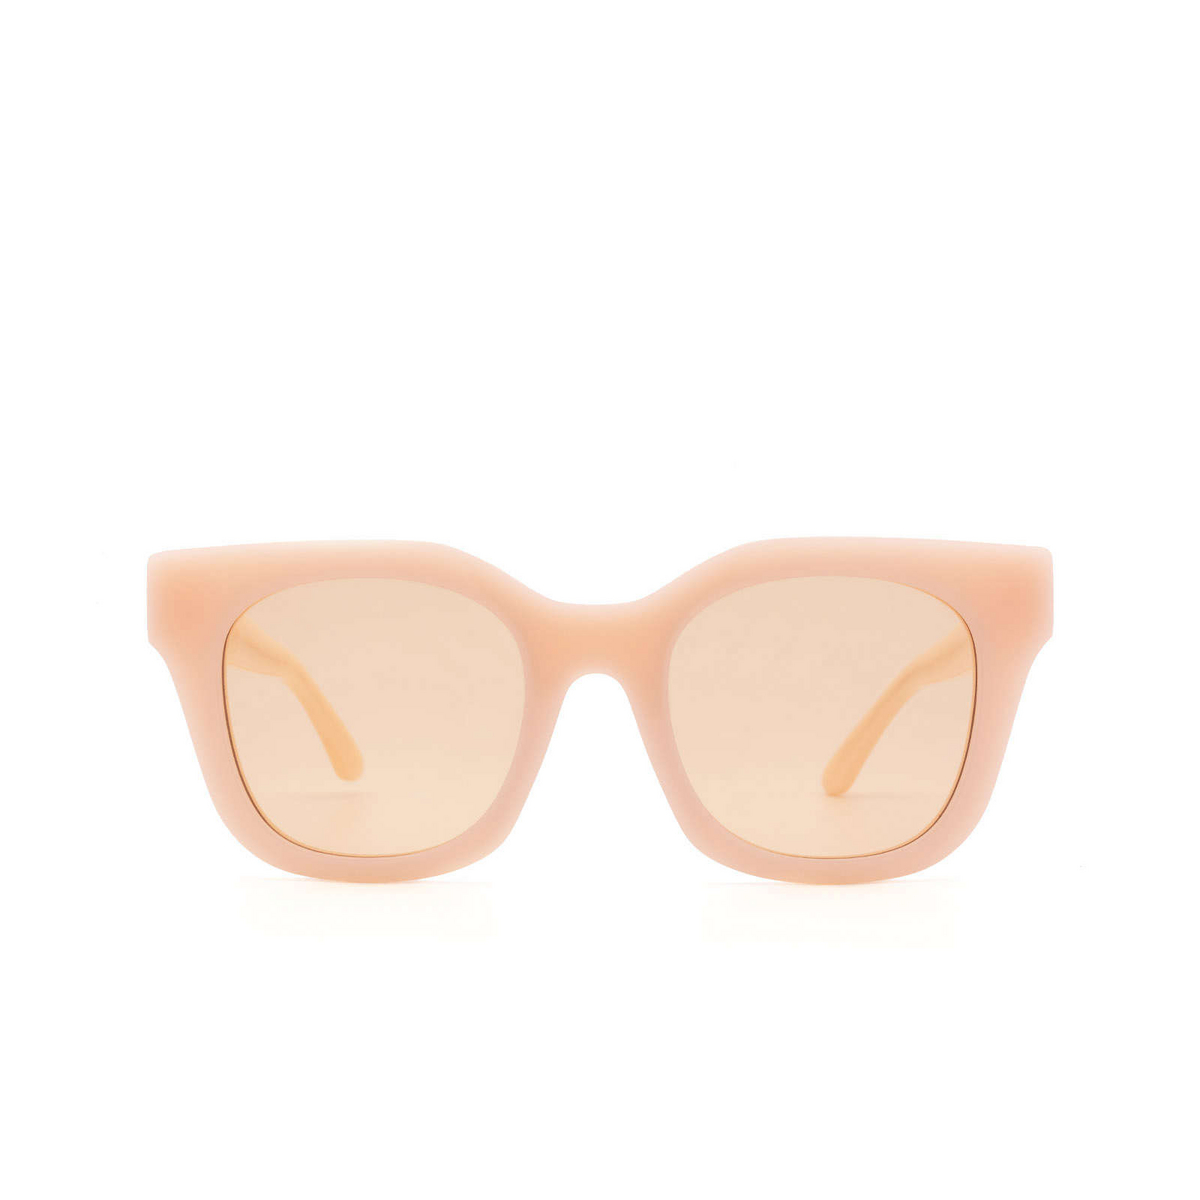 Huma® Square Sunglasses: Blue color Pink 11 - front view.